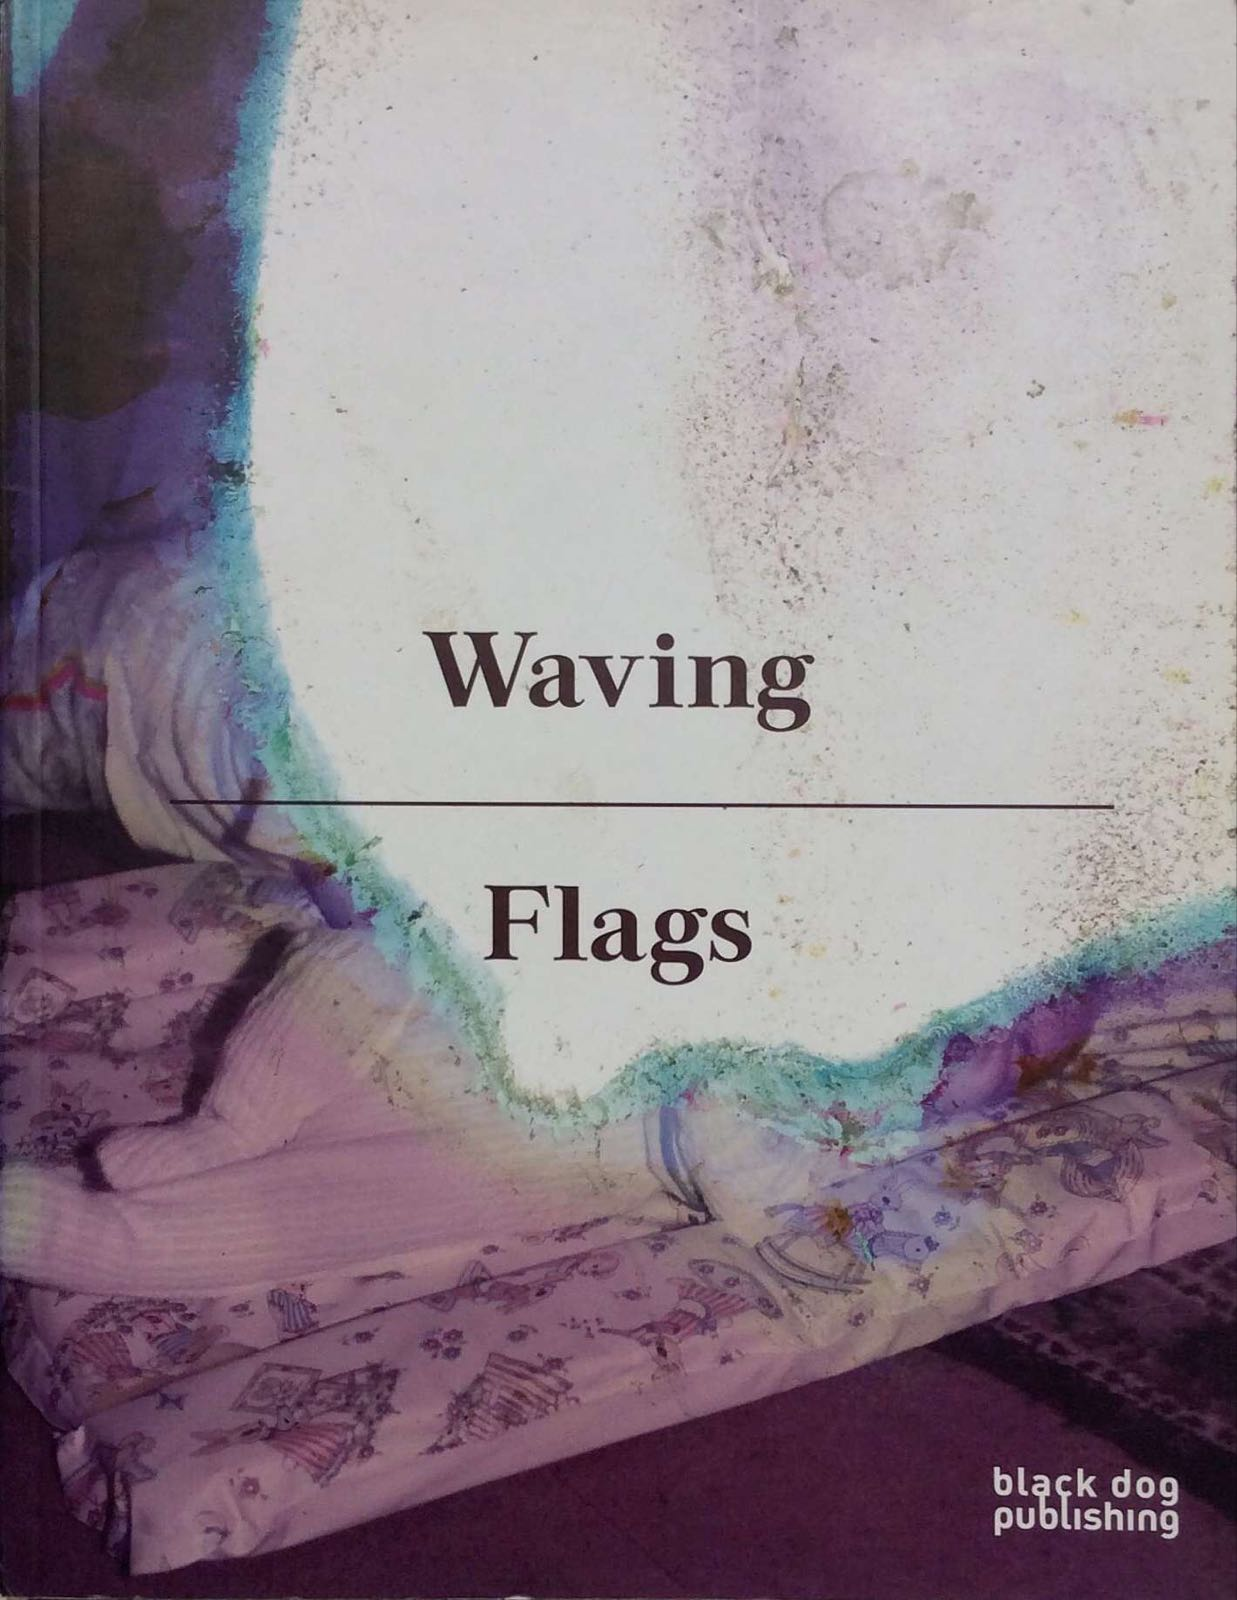 Black Dog Publishing. Waving Flags